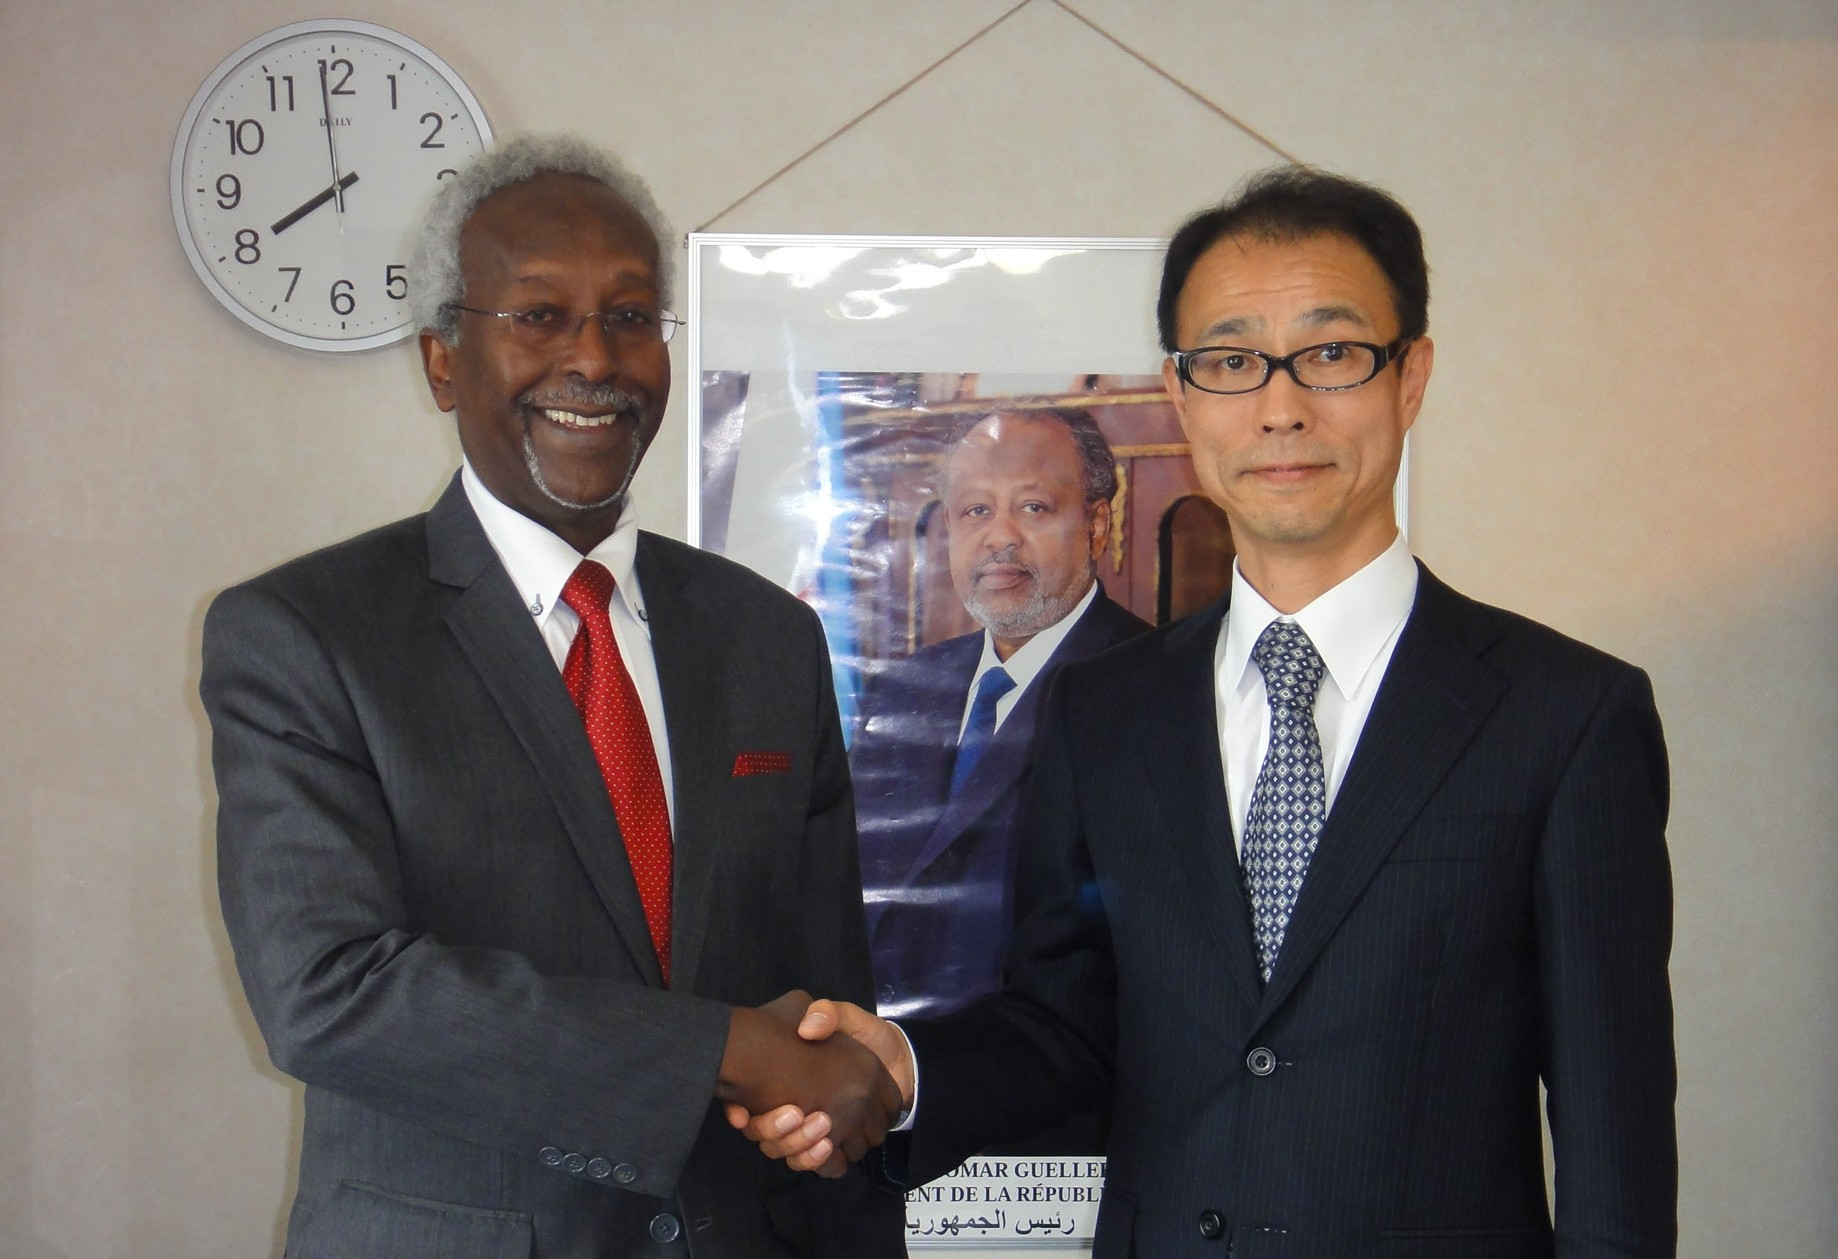 Courtesy visit of the new Japanese Ambassador to Djibouti with H.E. Mr. Ahmed Araita Ali